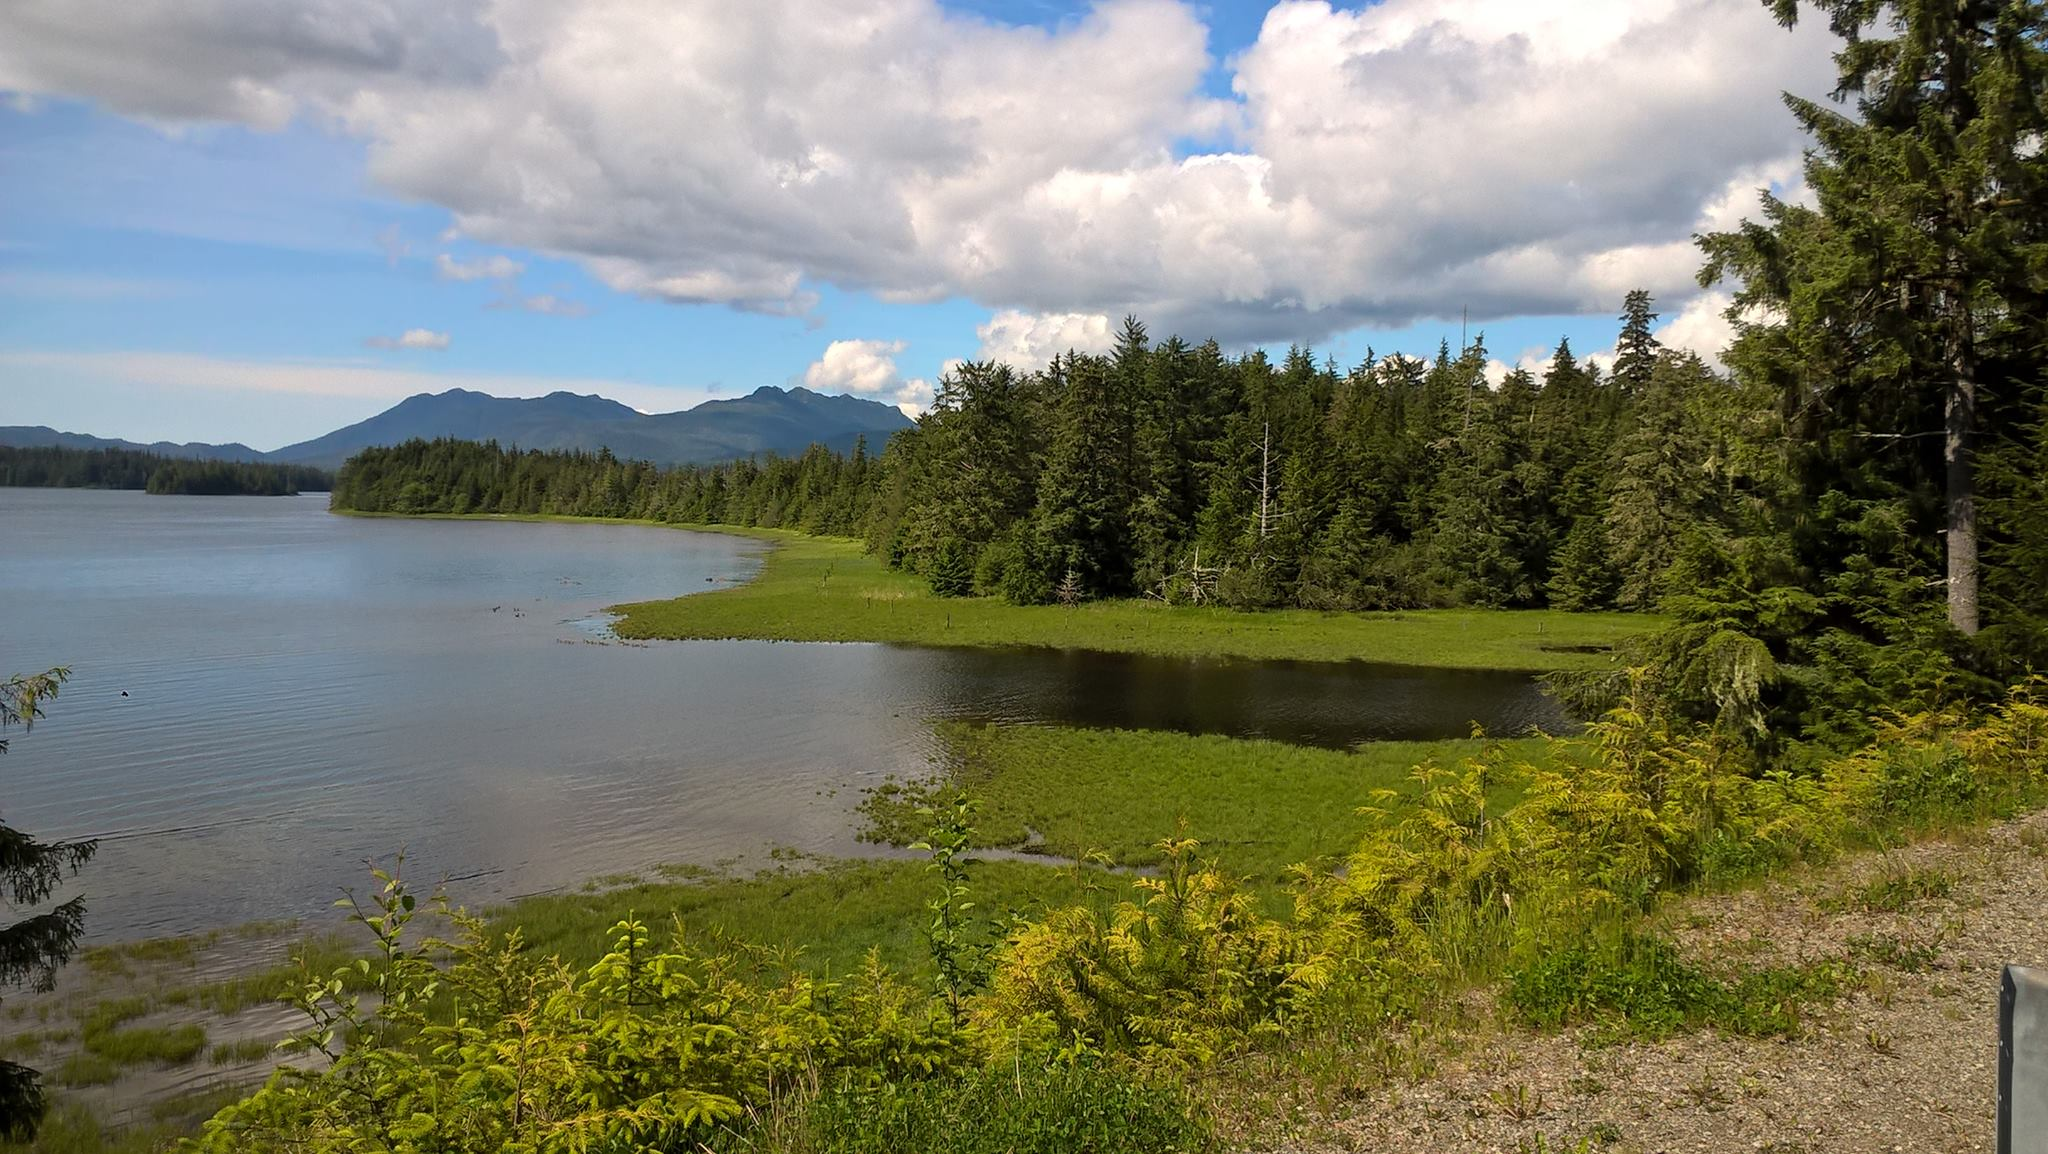 THE WATER'S EDGE, LIKE THIS BEAUTIFUL SPOT AT KLAWOCK, IS THE PERFECT PLACE TO SEE WILDLIFE. FIND A COMFORTABLE SPOT, SIT QUIETLY, AND ENJOY WHAT NATURE PRESENTS. IMAGE: THANKS TO BONNIE CHRISTINE AND ALASKA LIFE FACEBOOK PAGE.